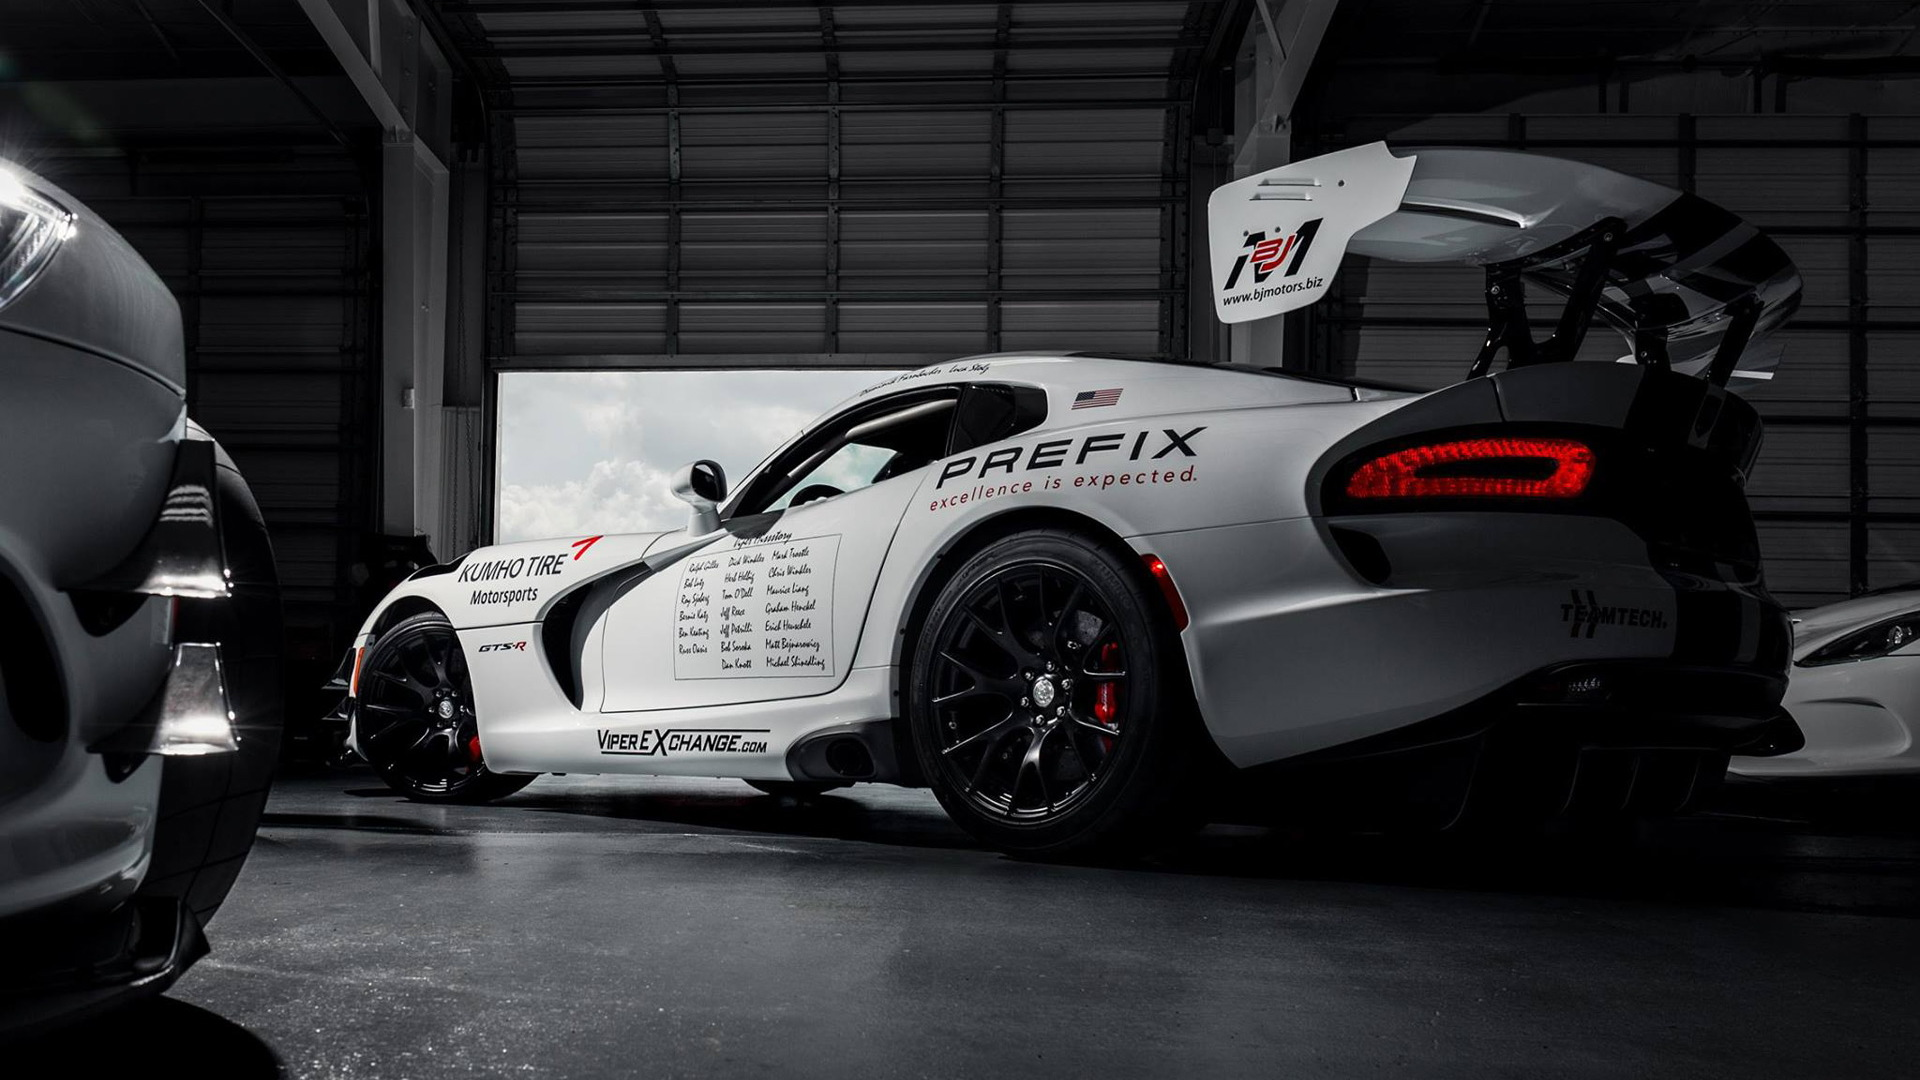 2017 Dodge Viper ACR in preparation for Nürburgring lap record attempt - Image via ViperRingKing